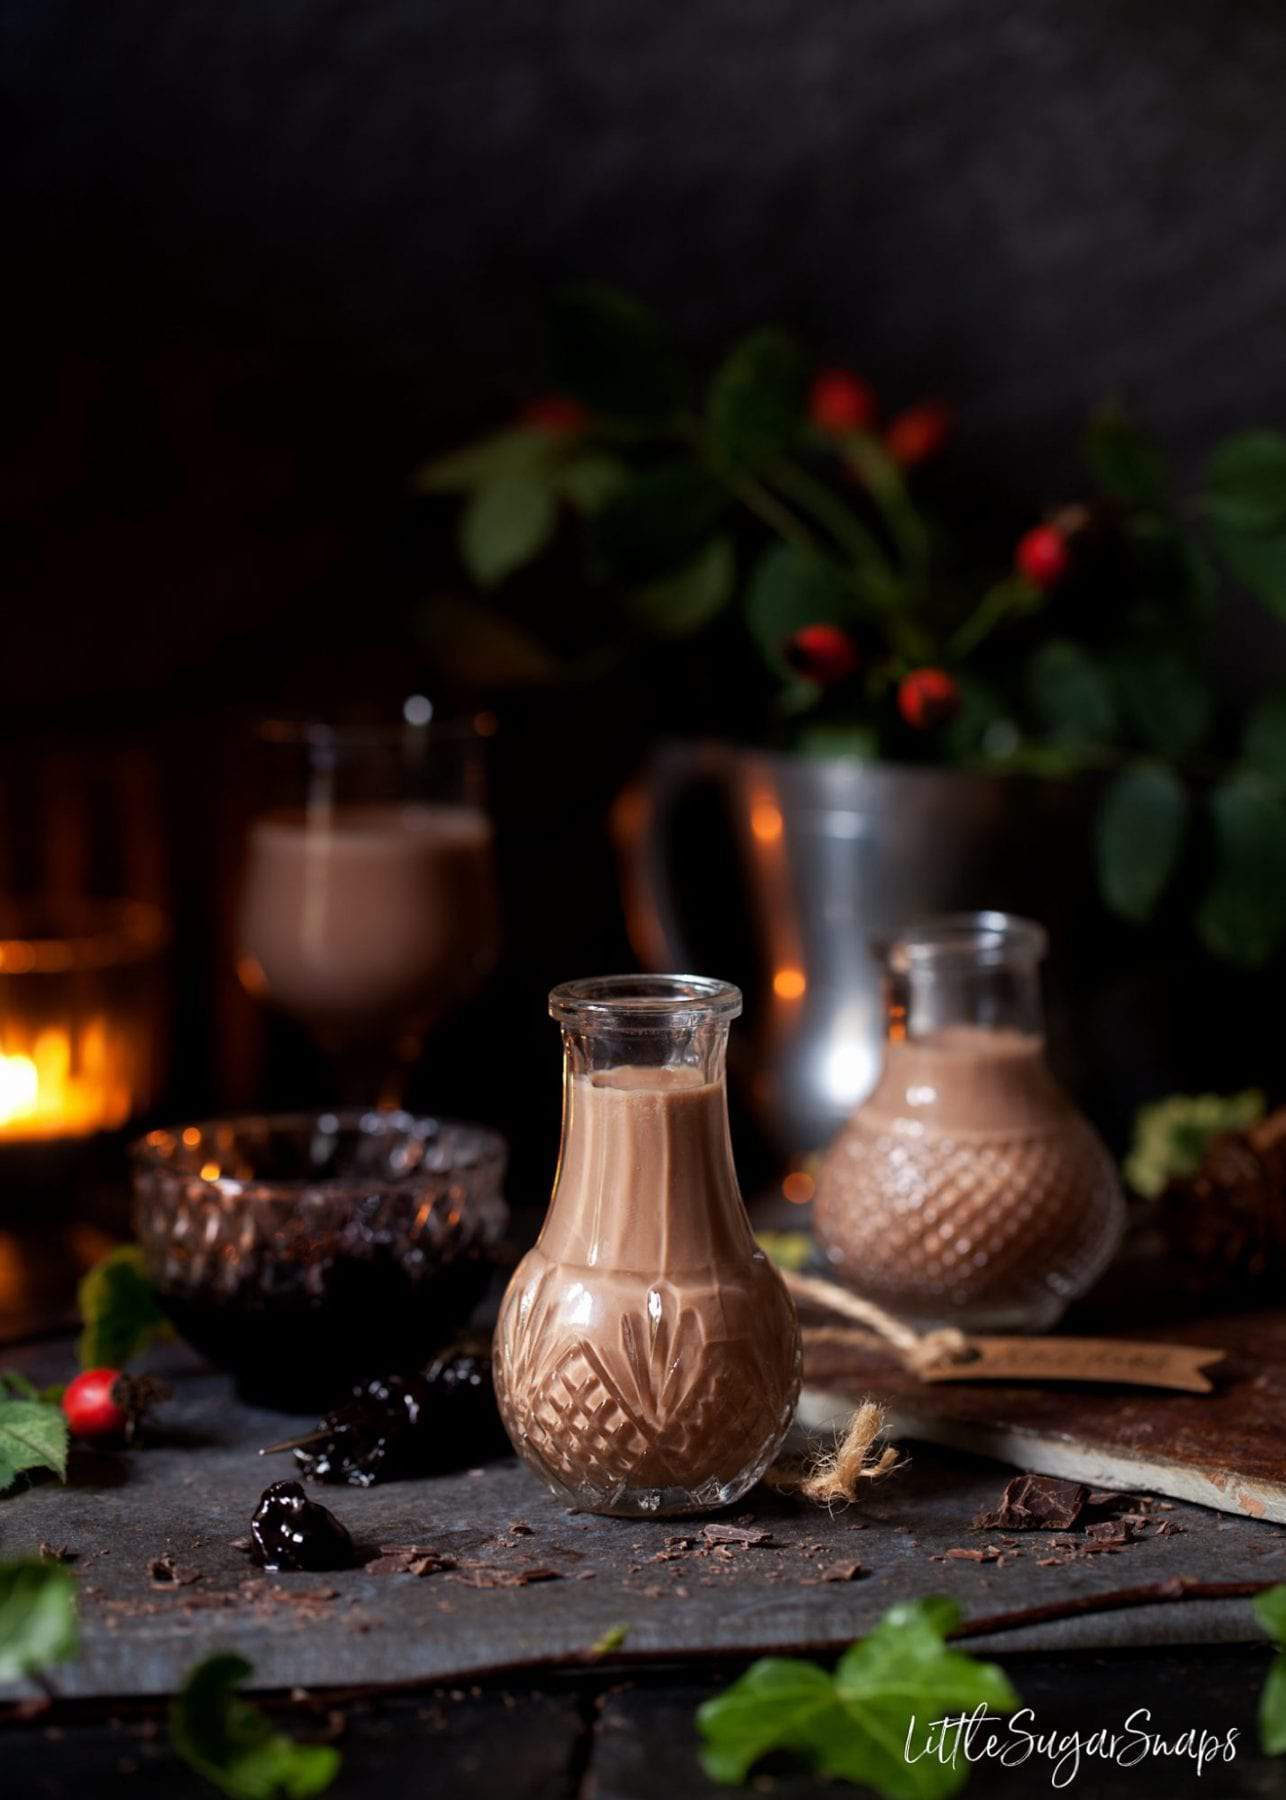 Black Forest Chocolate Liqueur